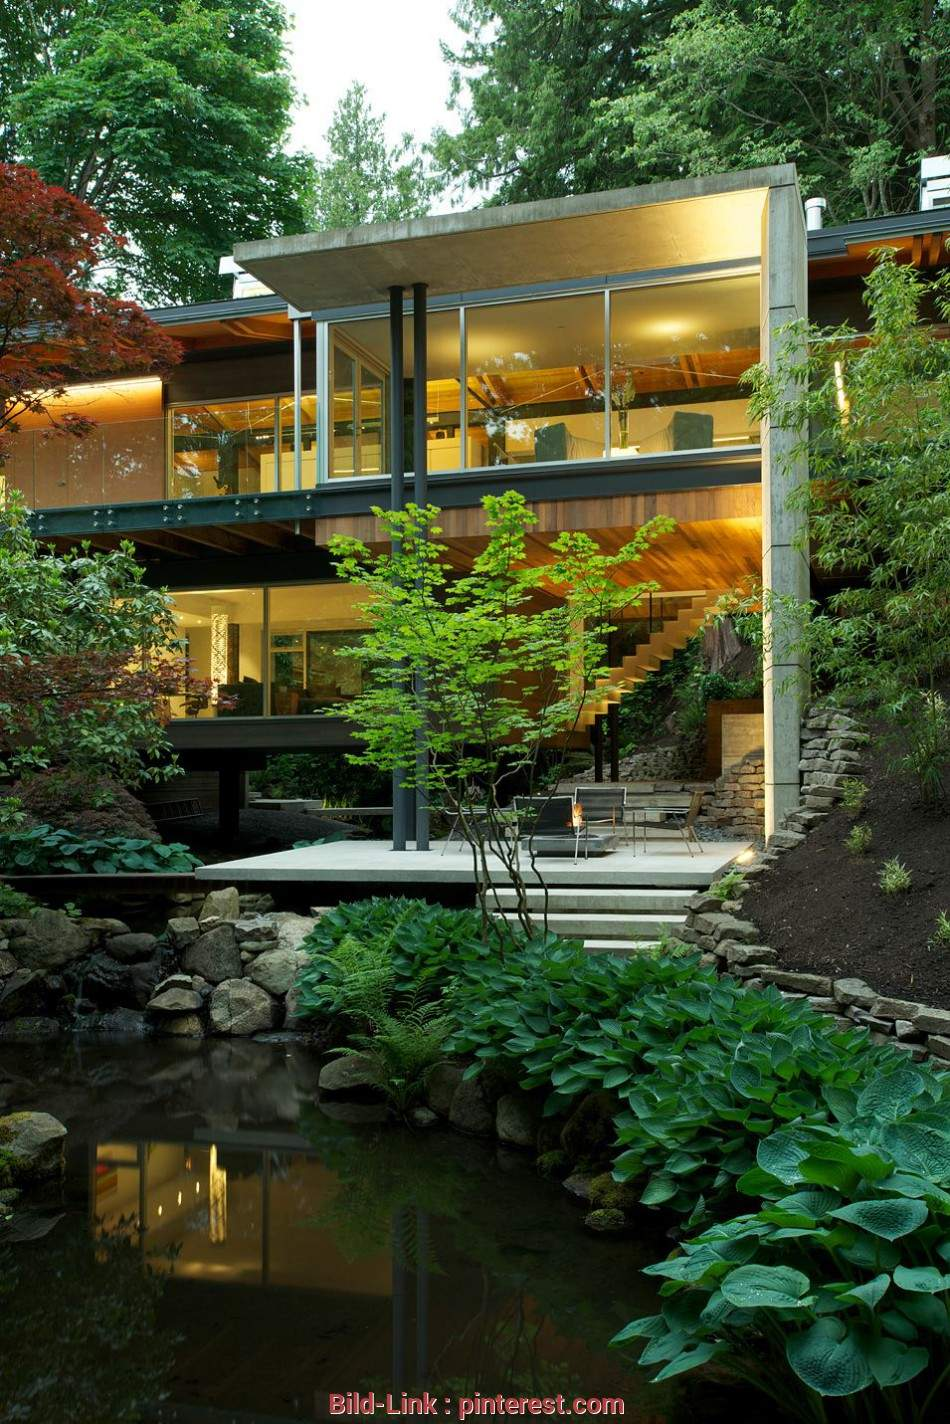 haus im wald southlands residence modernes haus im wald architecture engineering pinterest architecture house design house 53